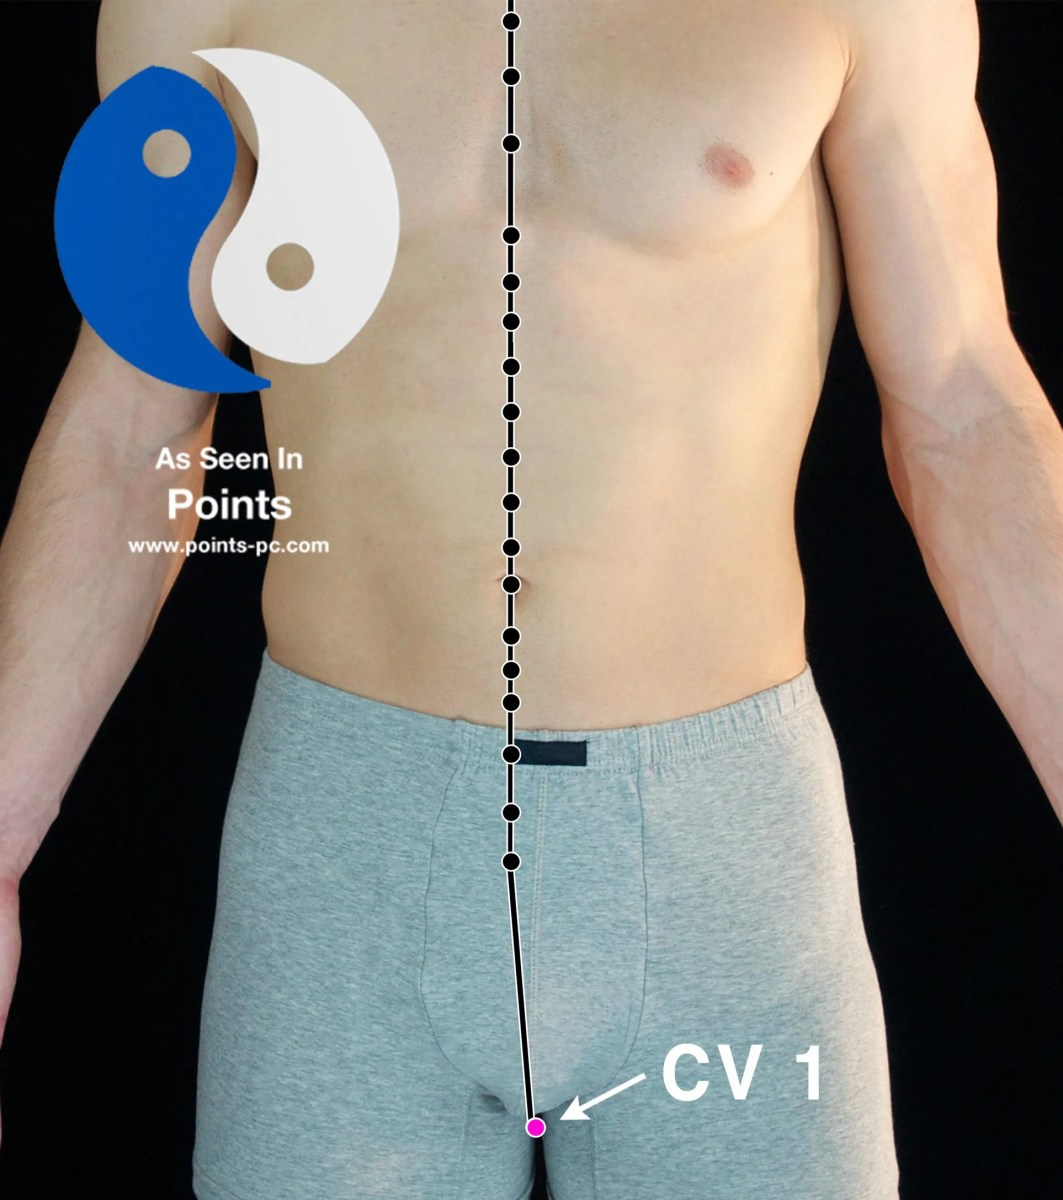 Acupuncture Point: Conception Vessel 1